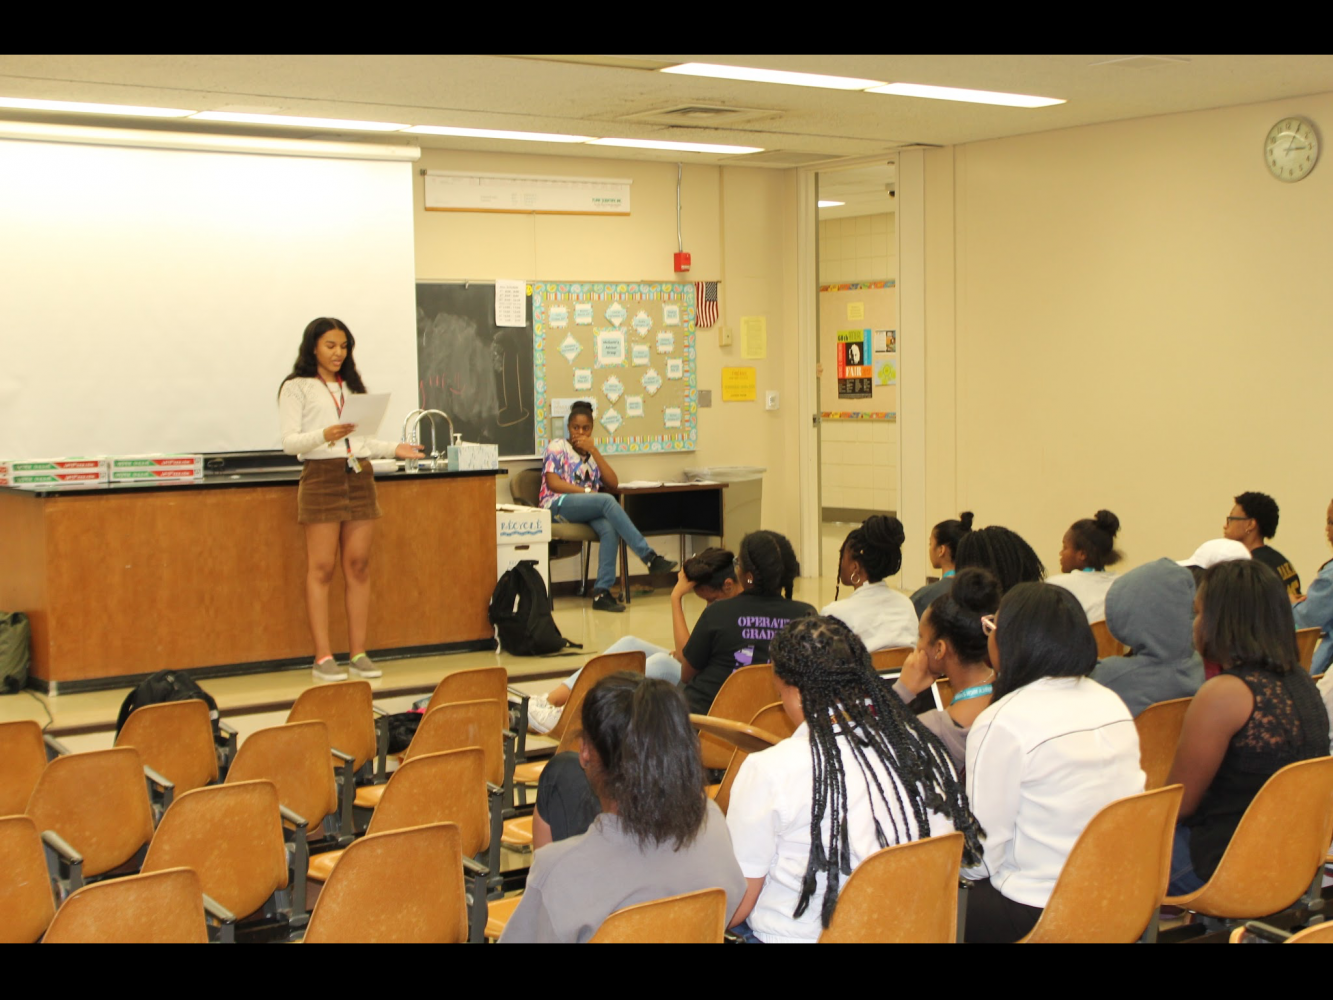 The Black Awareness Society for Education celebrates its final meeting and holds the elections for next years officers. (Photo Credit: Jasmine Williams)